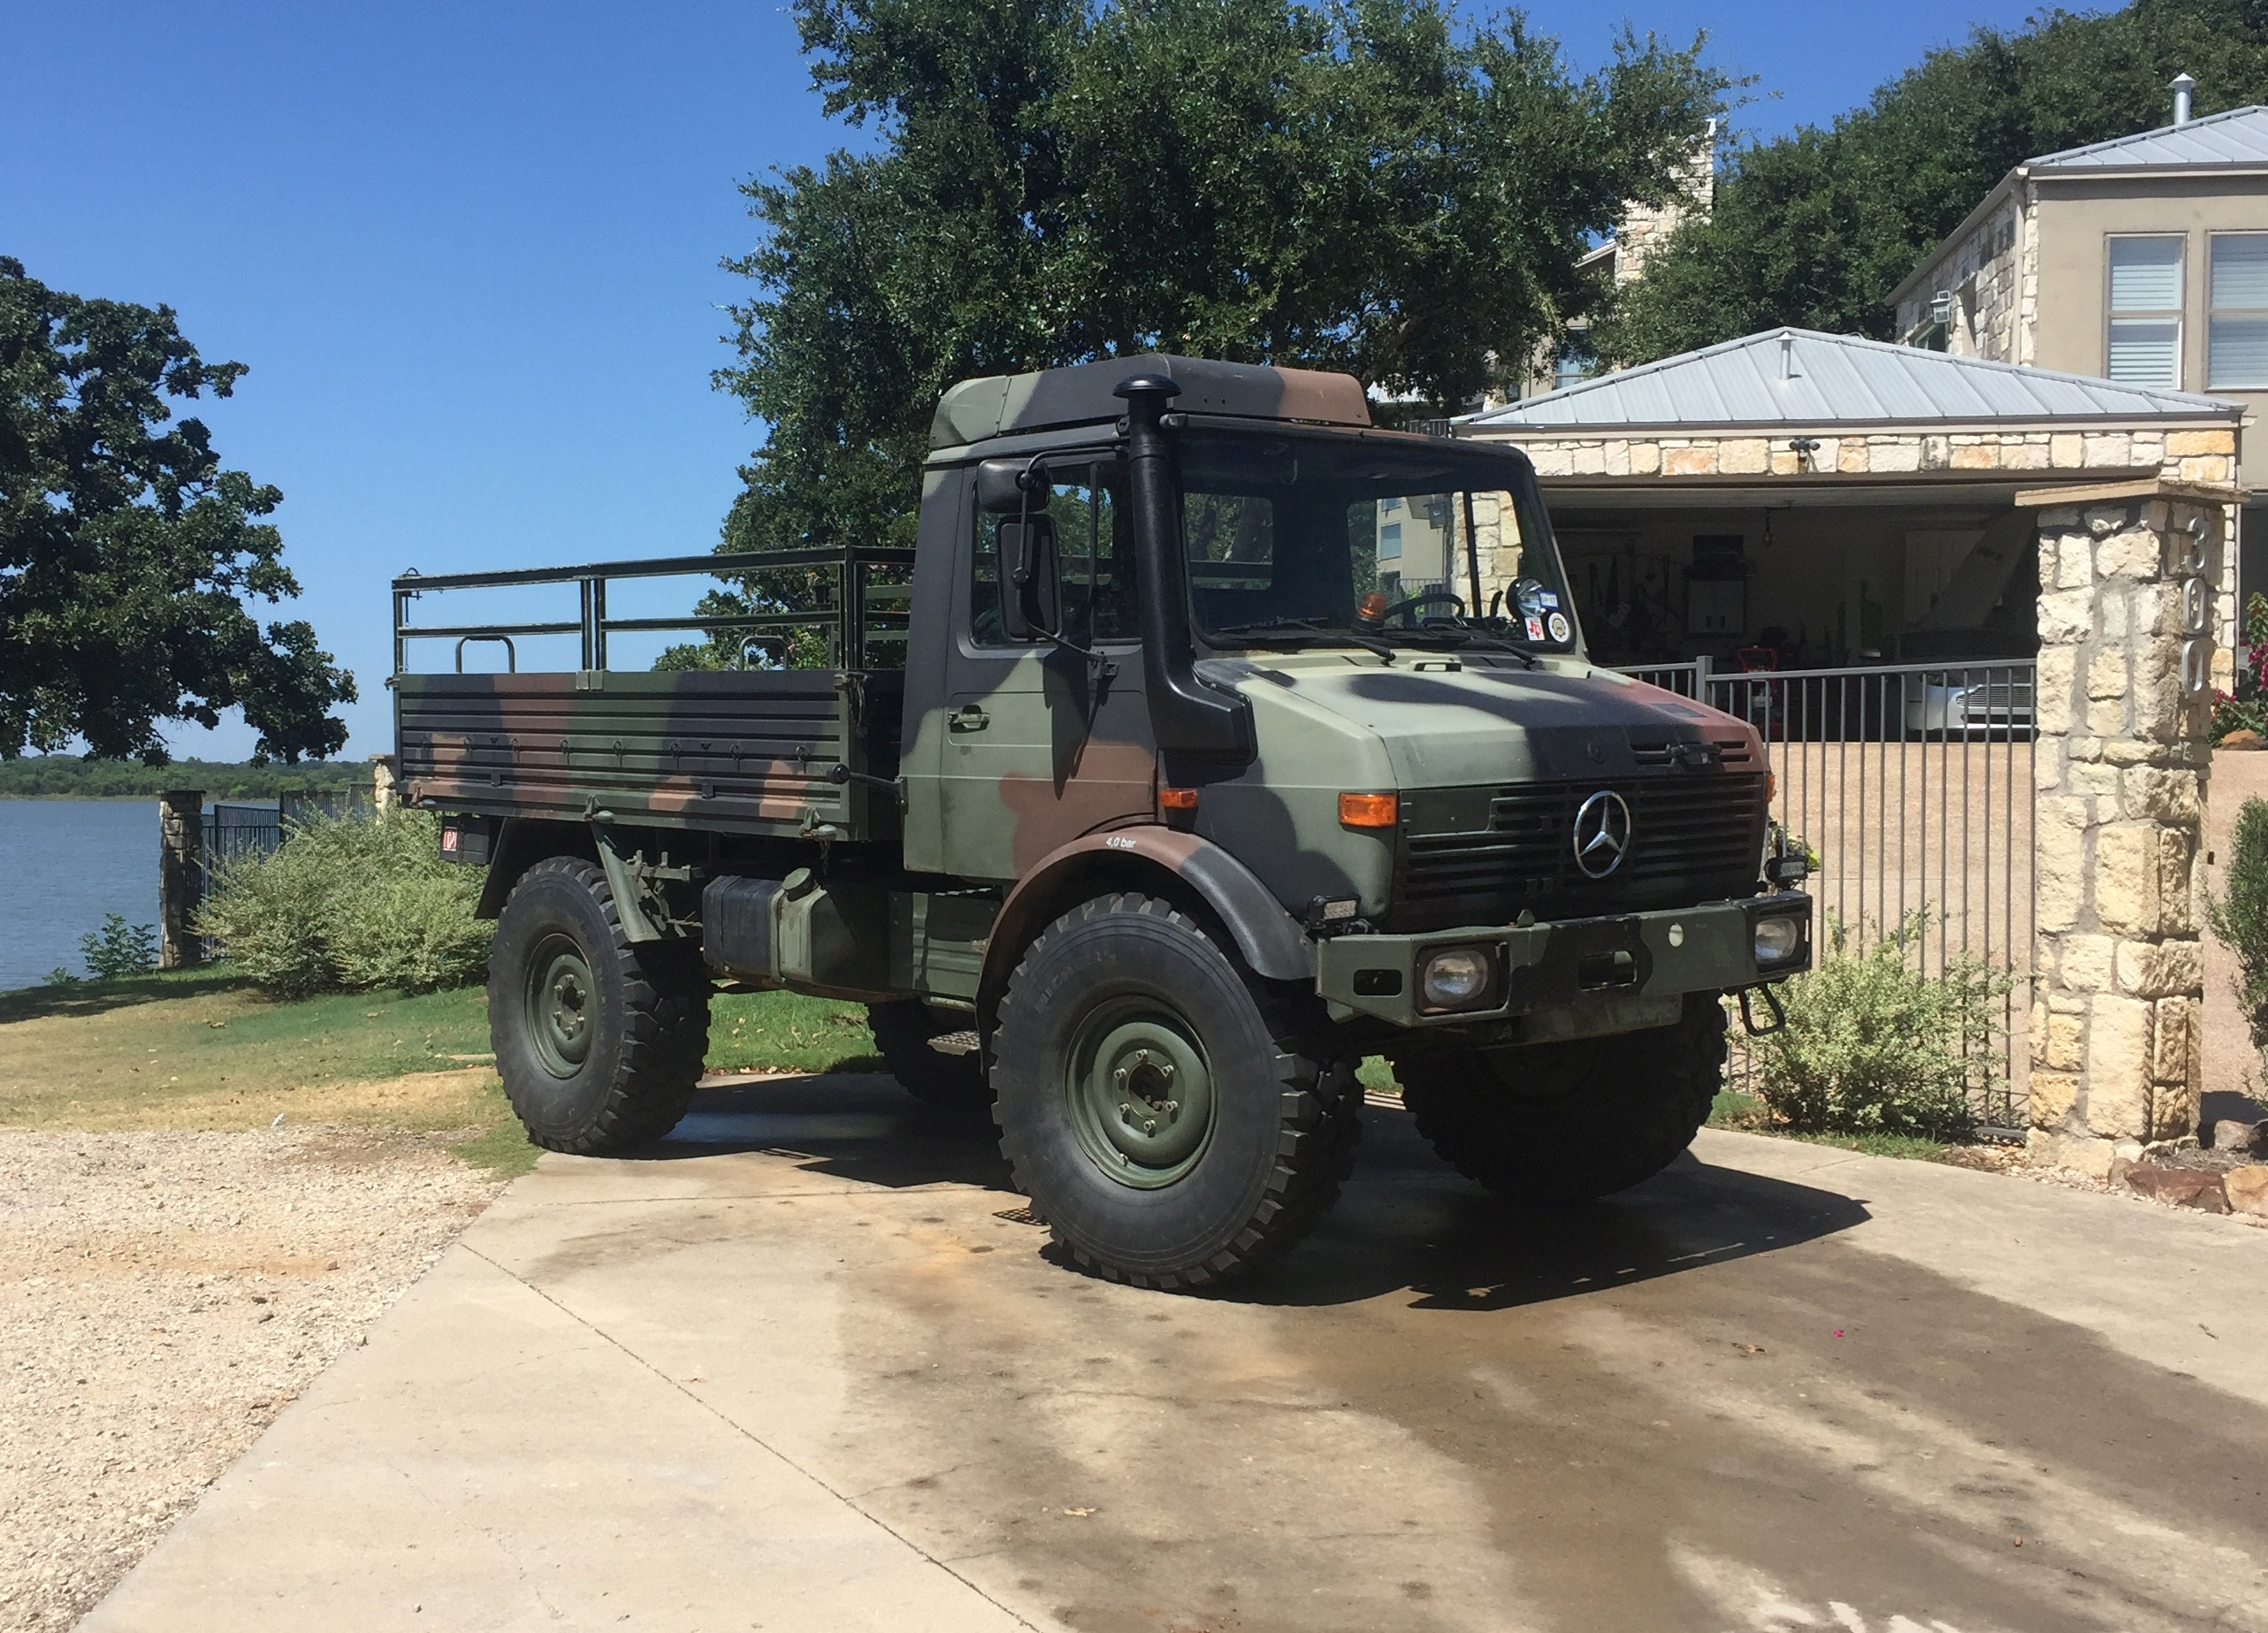 1987 unimog 1300l couch off road engineering. Black Bedroom Furniture Sets. Home Design Ideas